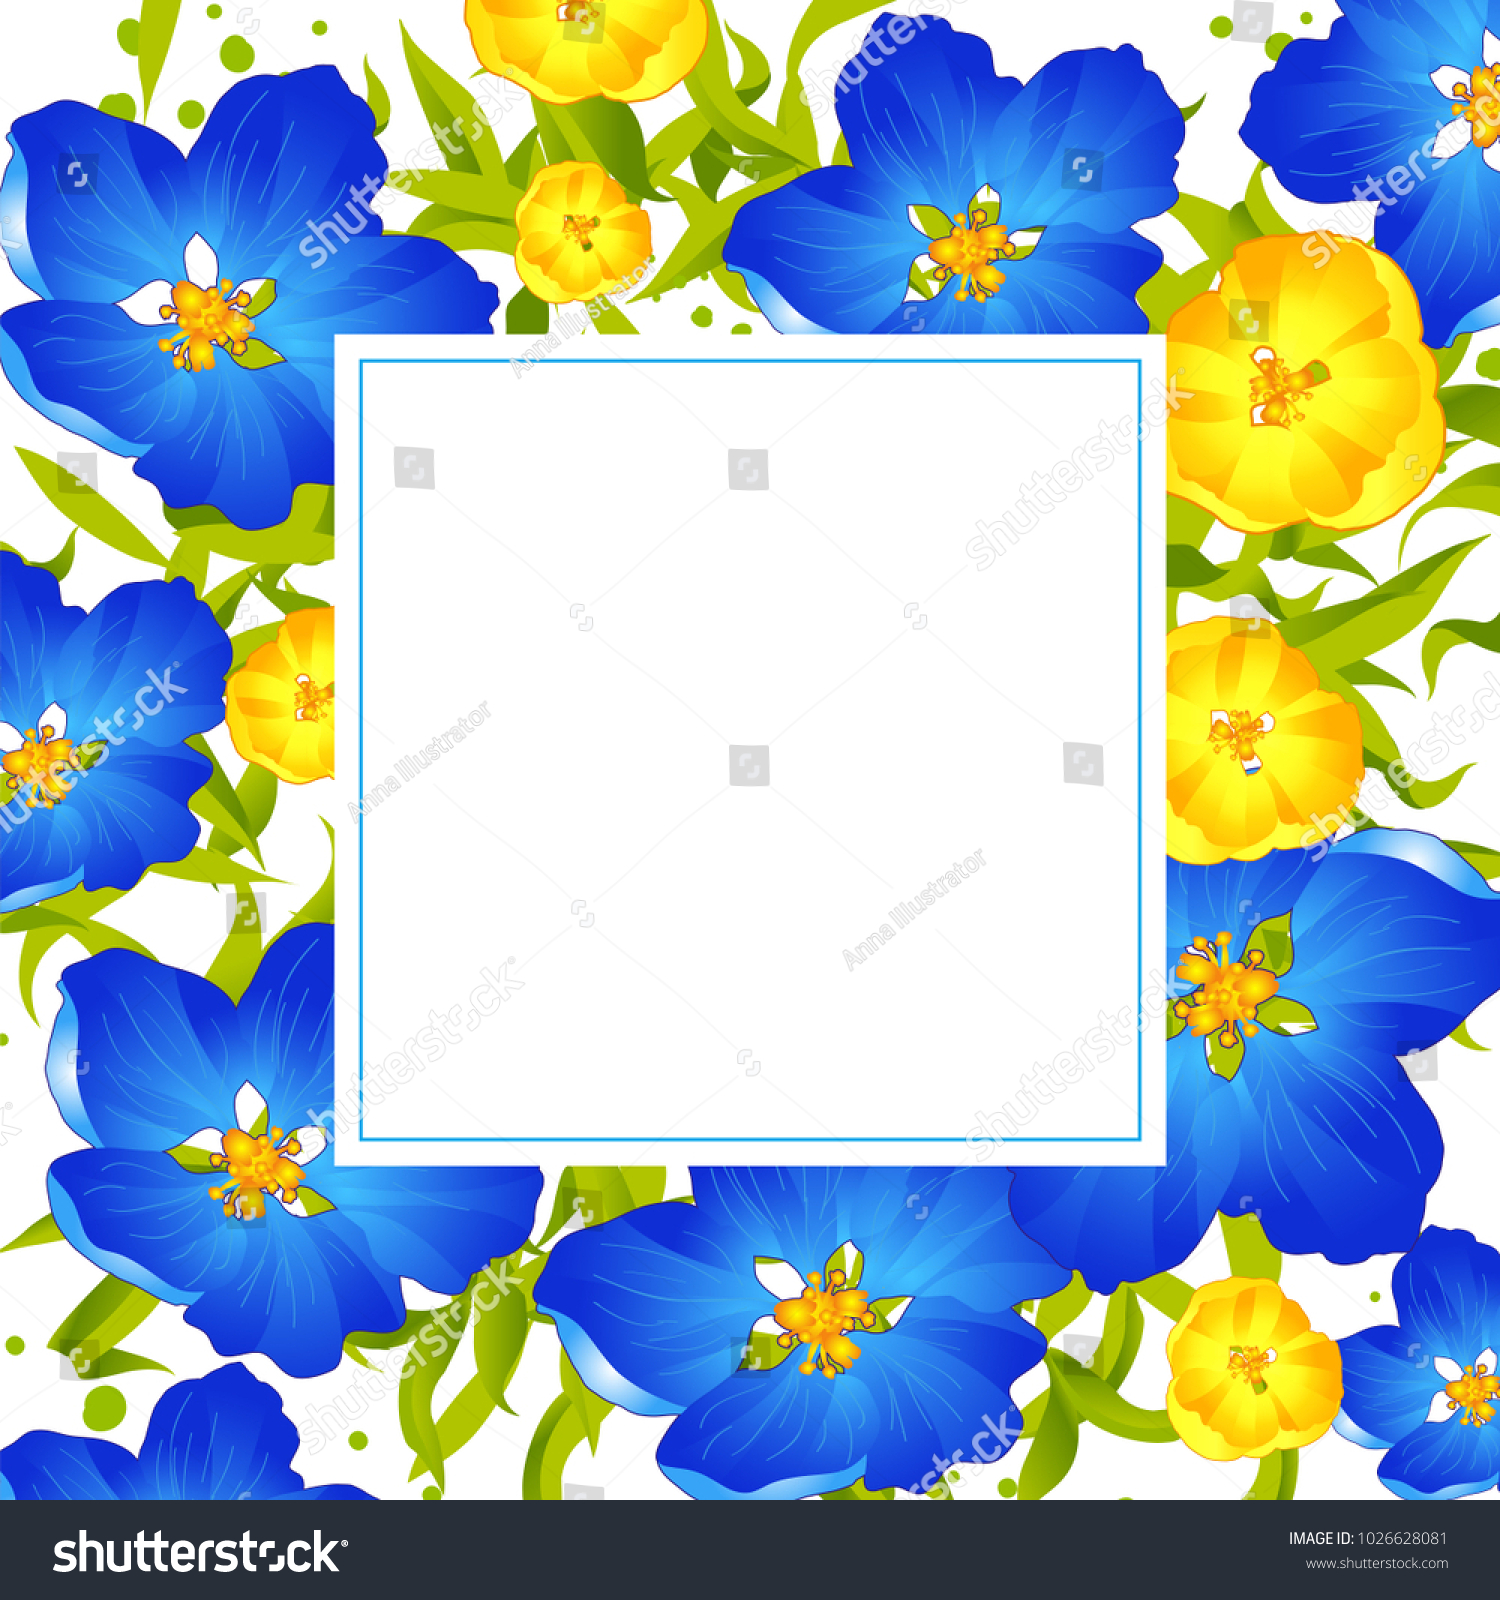 Vector Flowers Vector Illustration Spring Summer Stock Vector